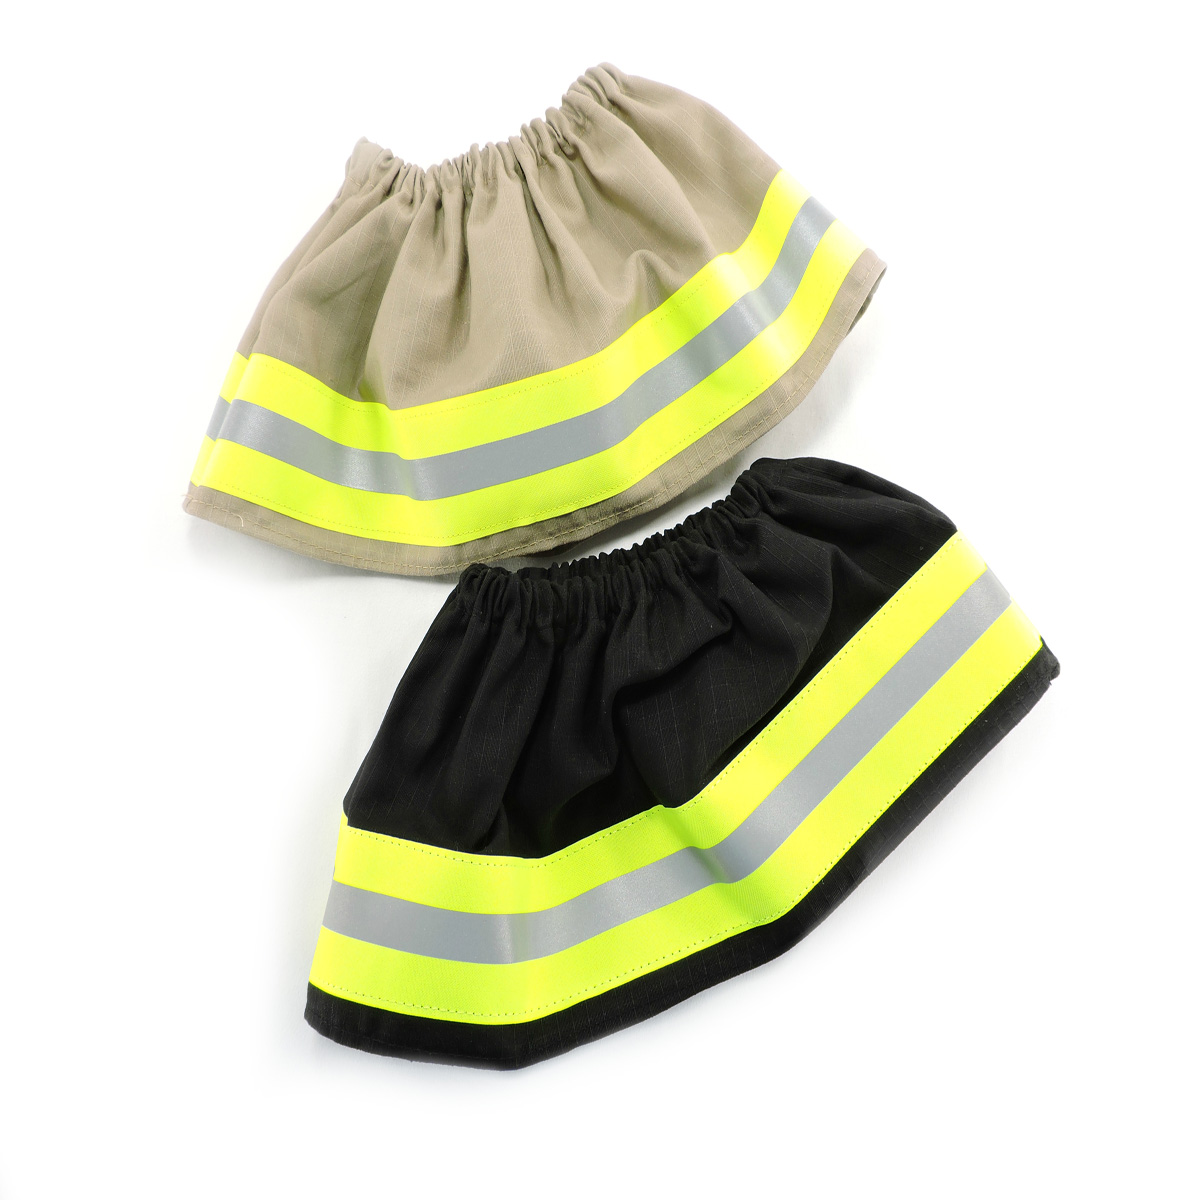 Firefighter-baby-skirt